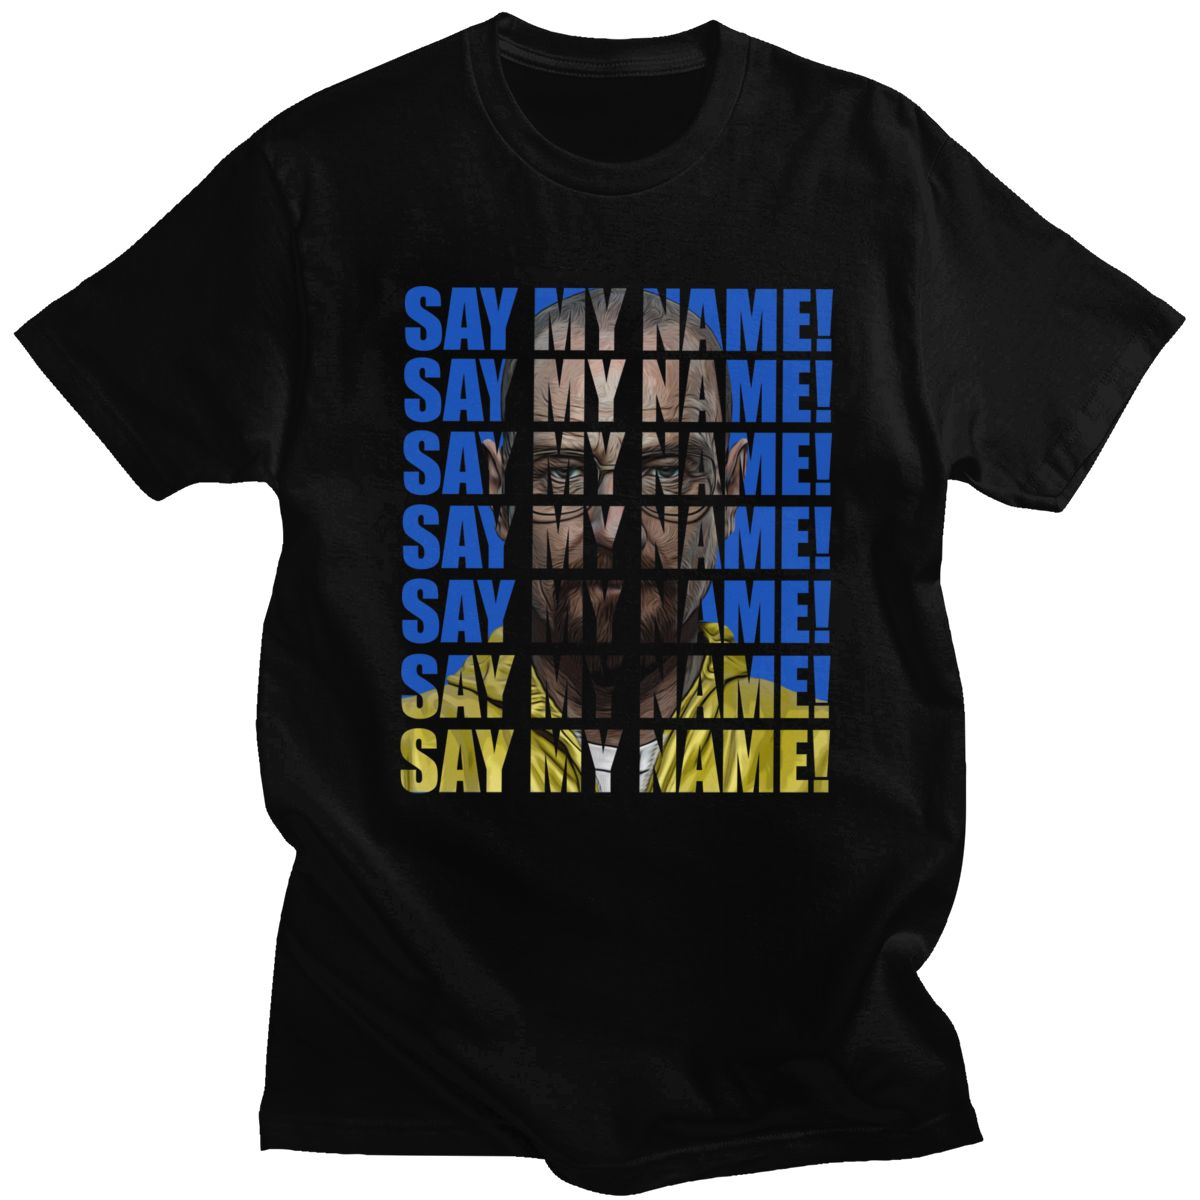 Breaking Bad Walter White T Shirt for Men Soft Cotton Say My Name Heisenberg Tshirt TV show Tee Tops Short Sleeve Summer T-shirt image